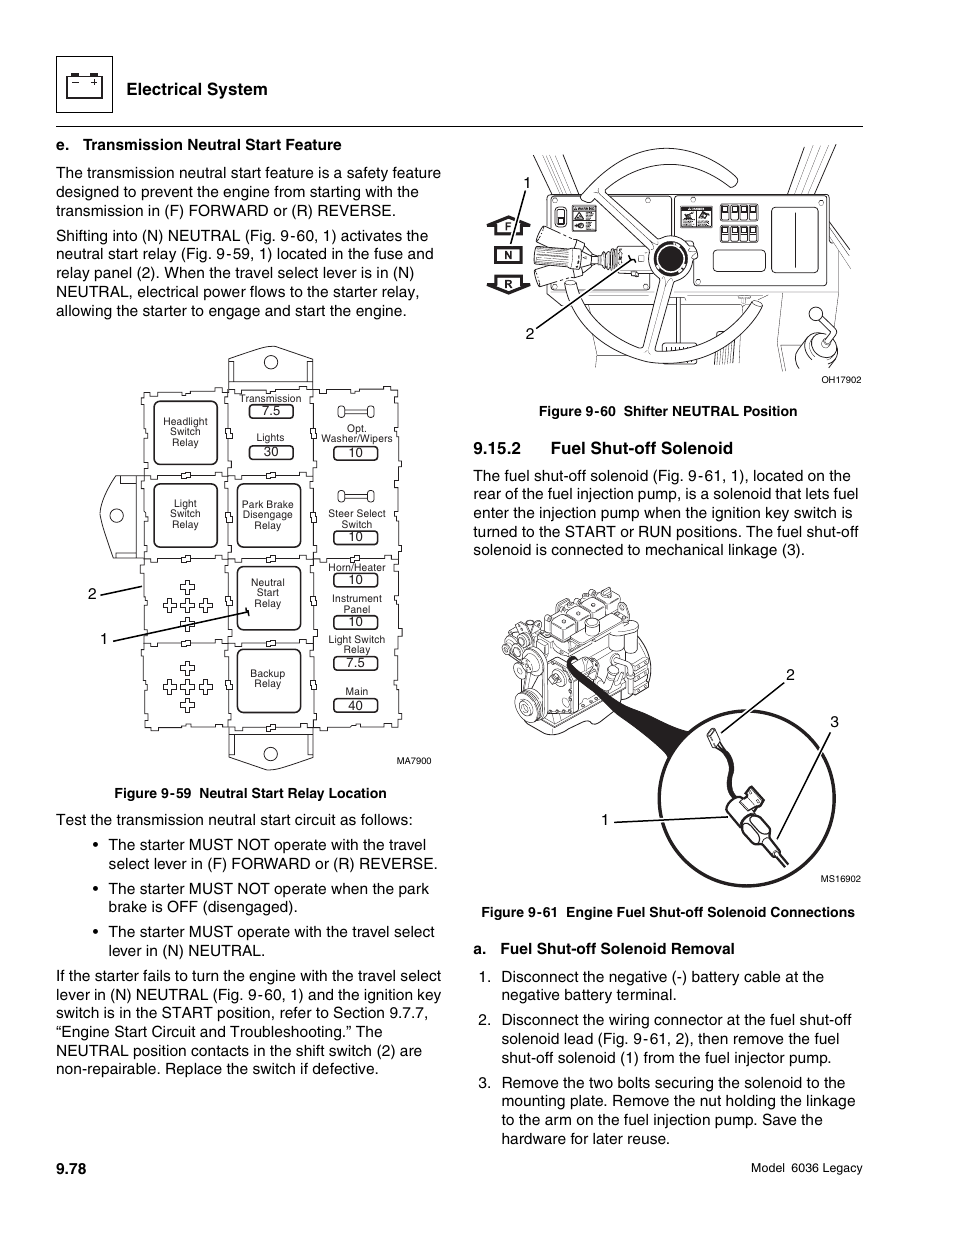 skytrak 6036 service manual page430 electrical system, 2 fuel shut off solenoid skytrak 6036 service skytrak 6036 wiring diagram at bayanpartner.co